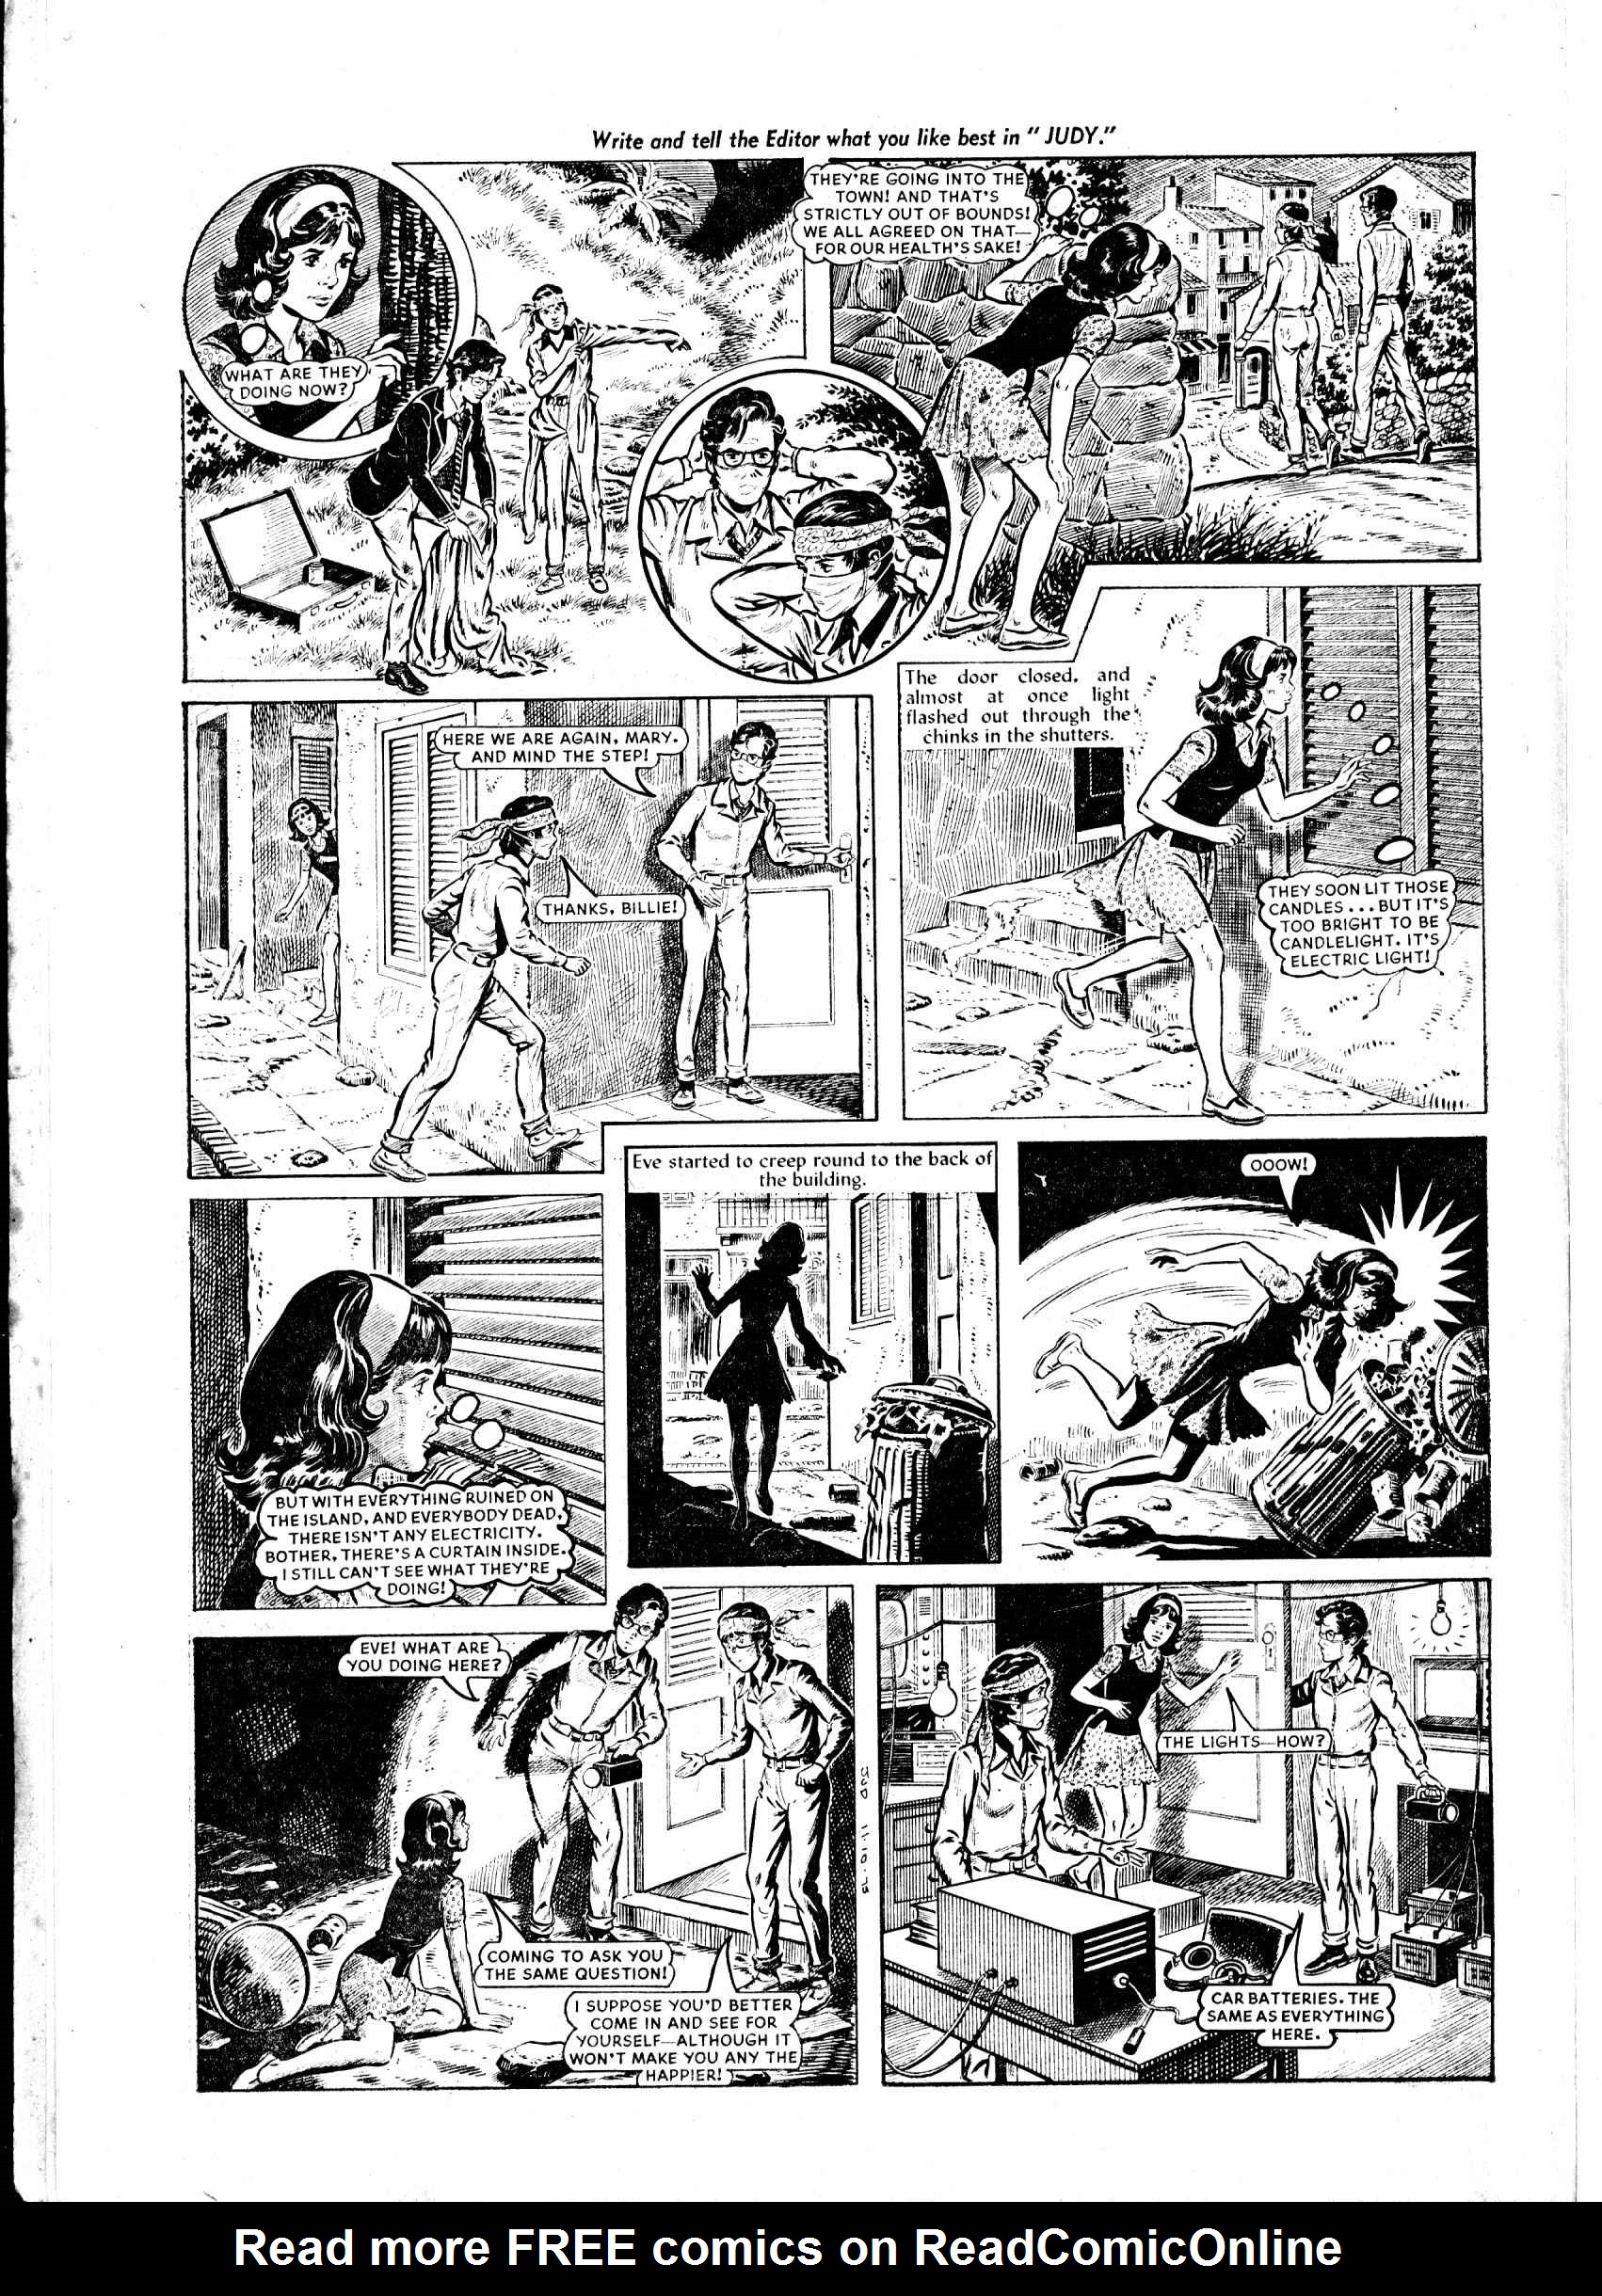 Read online Judy comic -  Issue #822 - 10